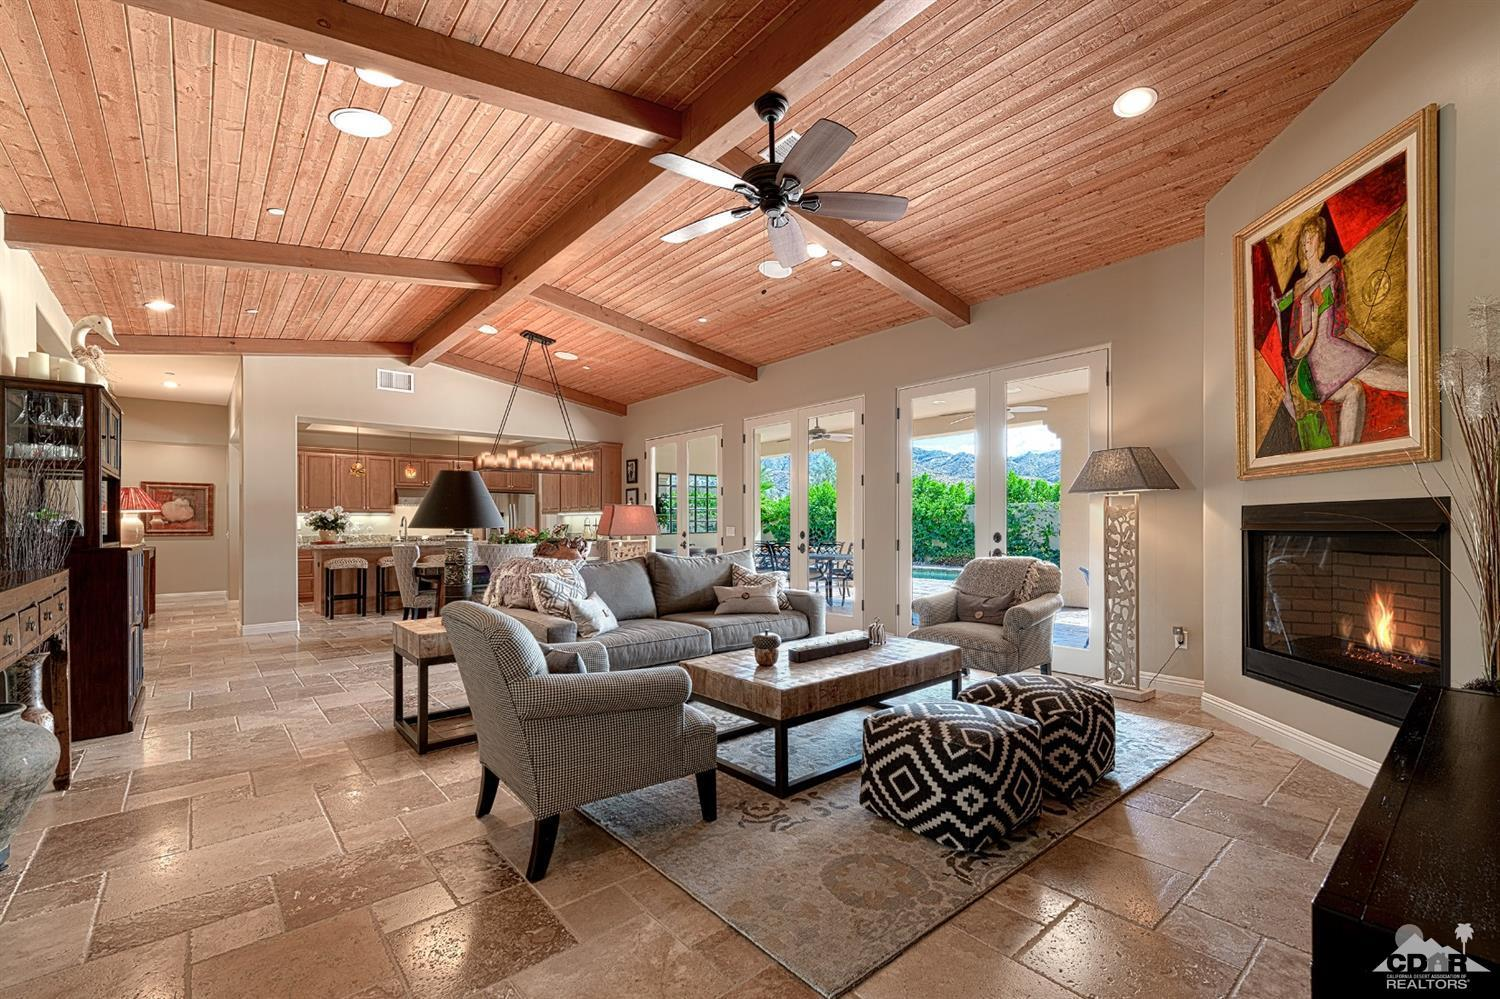 775 Dogwood Circle W, Palm Springs, California 92264, 5 Bedrooms Bedrooms, ,6 BathroomsBathrooms,Residential,Sold,775 Dogwood Circle W,218028210